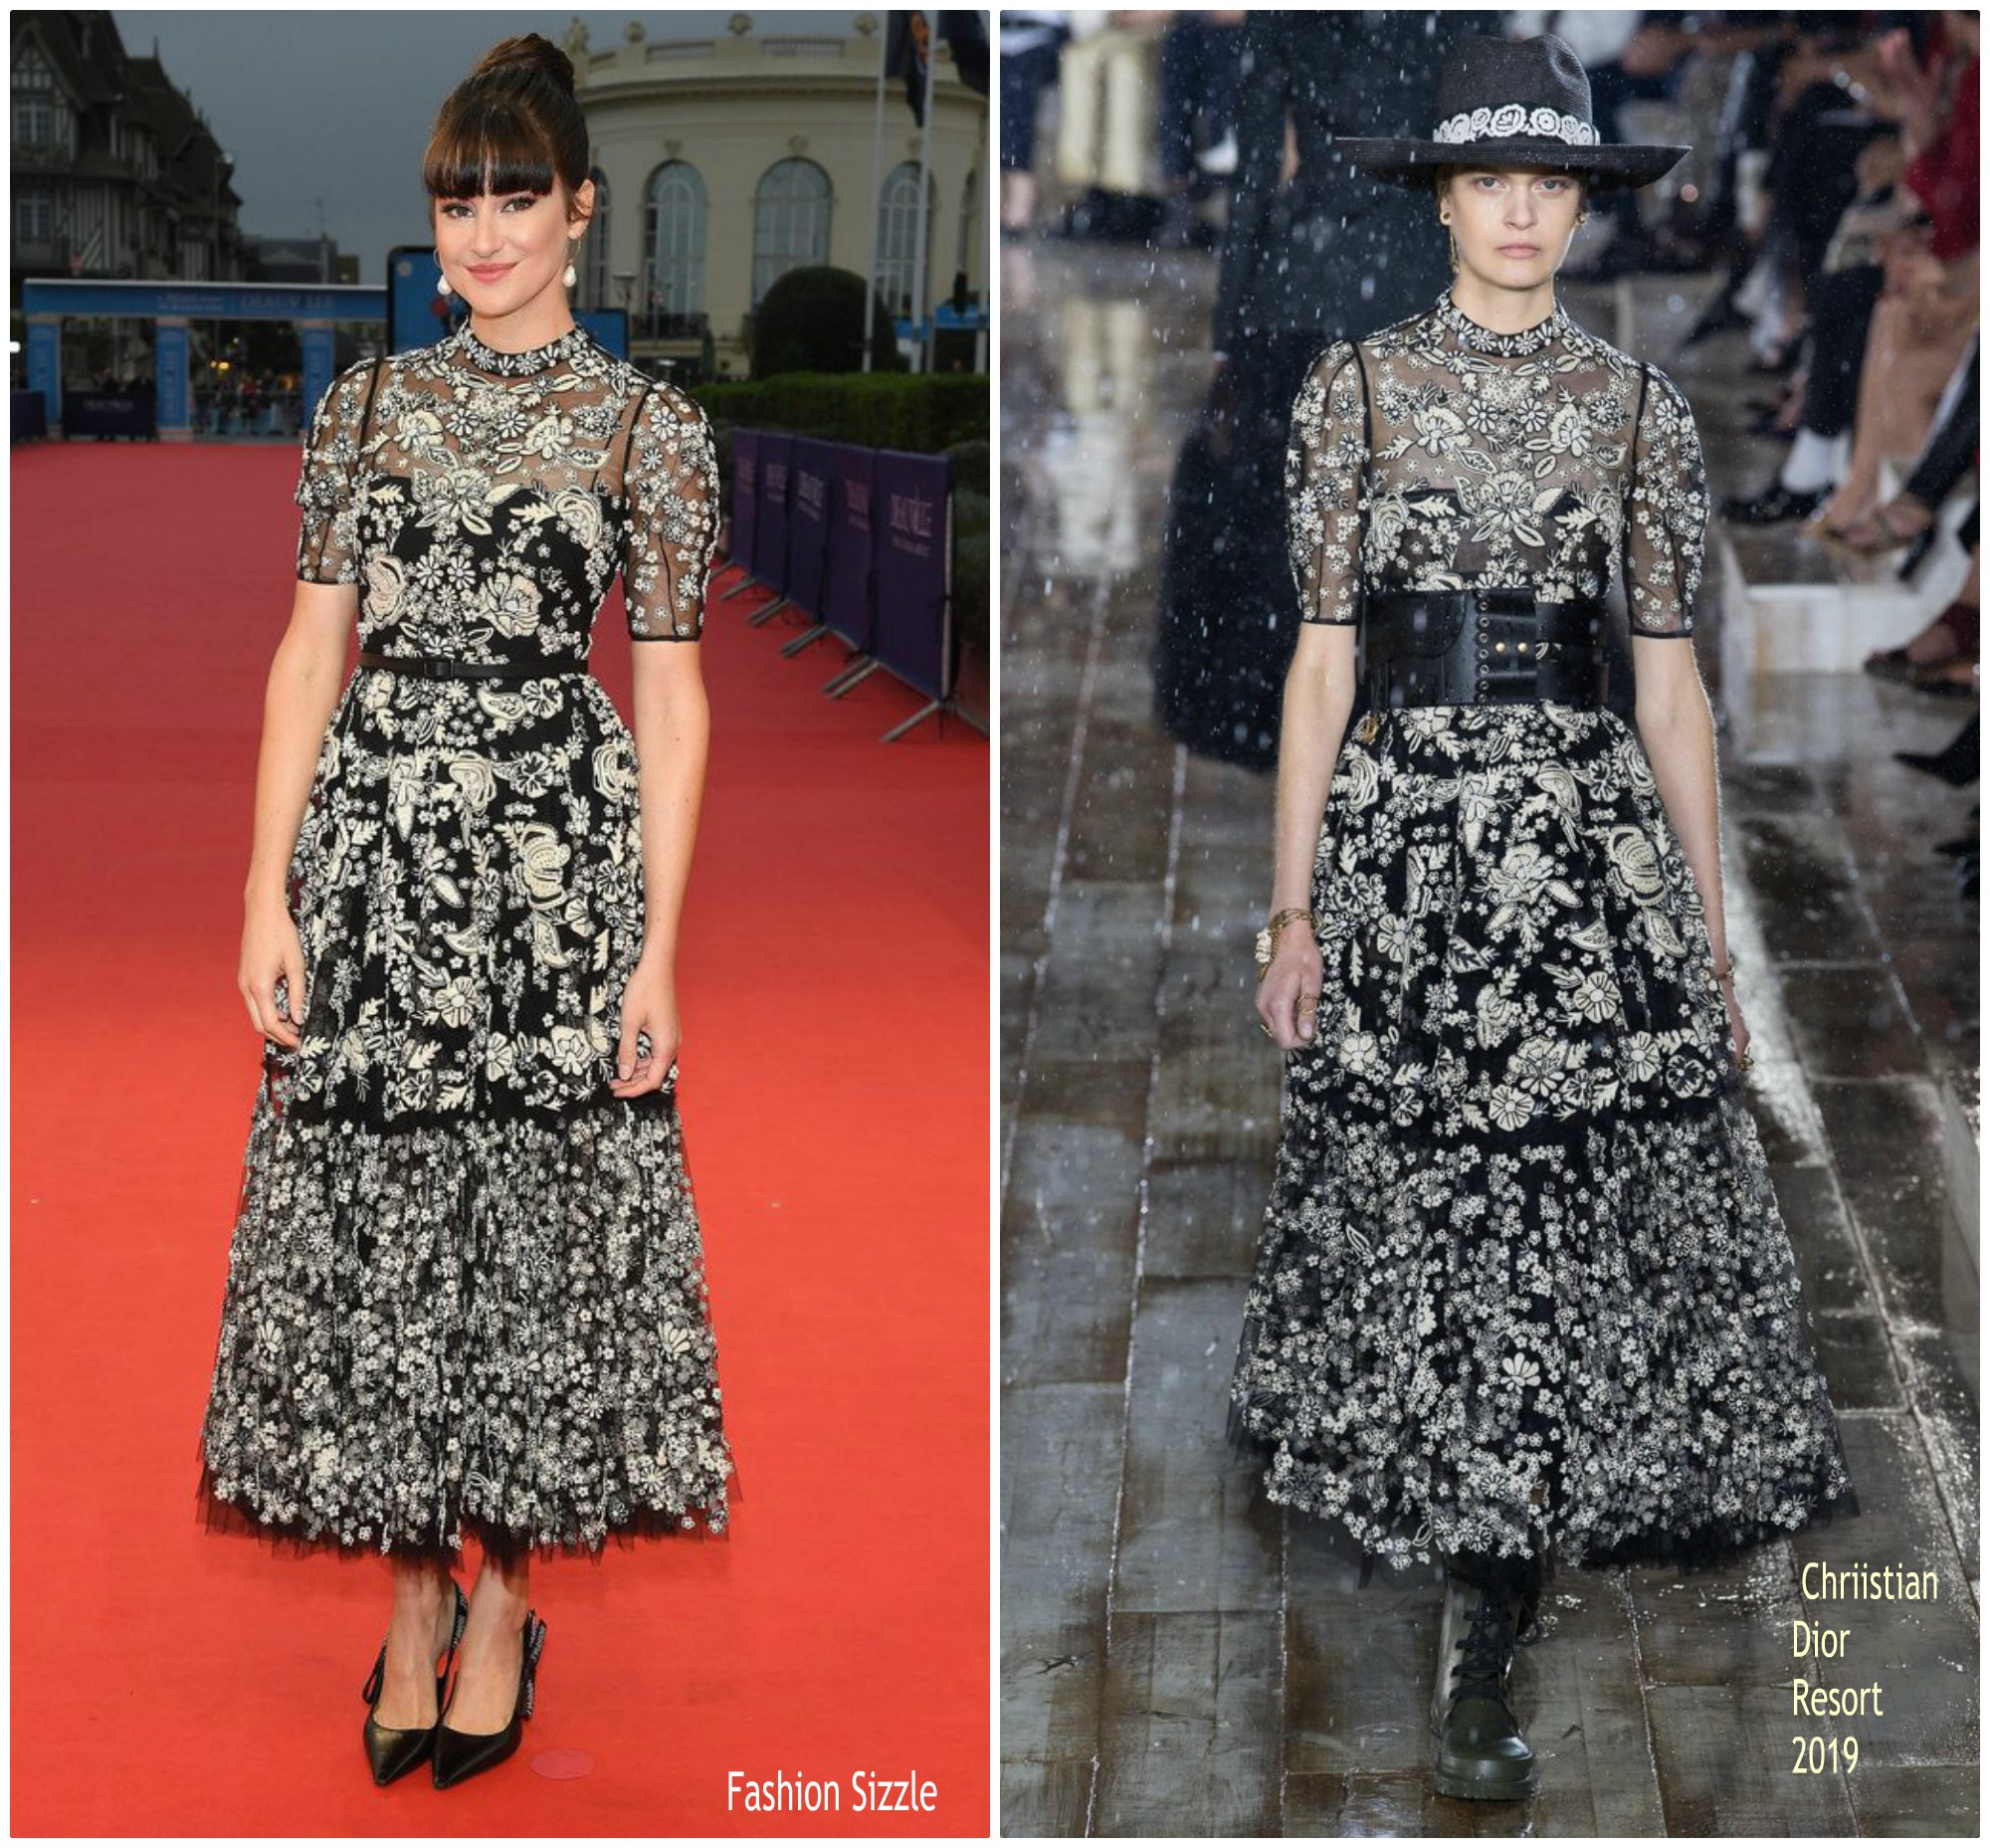 shailene-woodley-in-christian-dior-deauville-american-film-festival